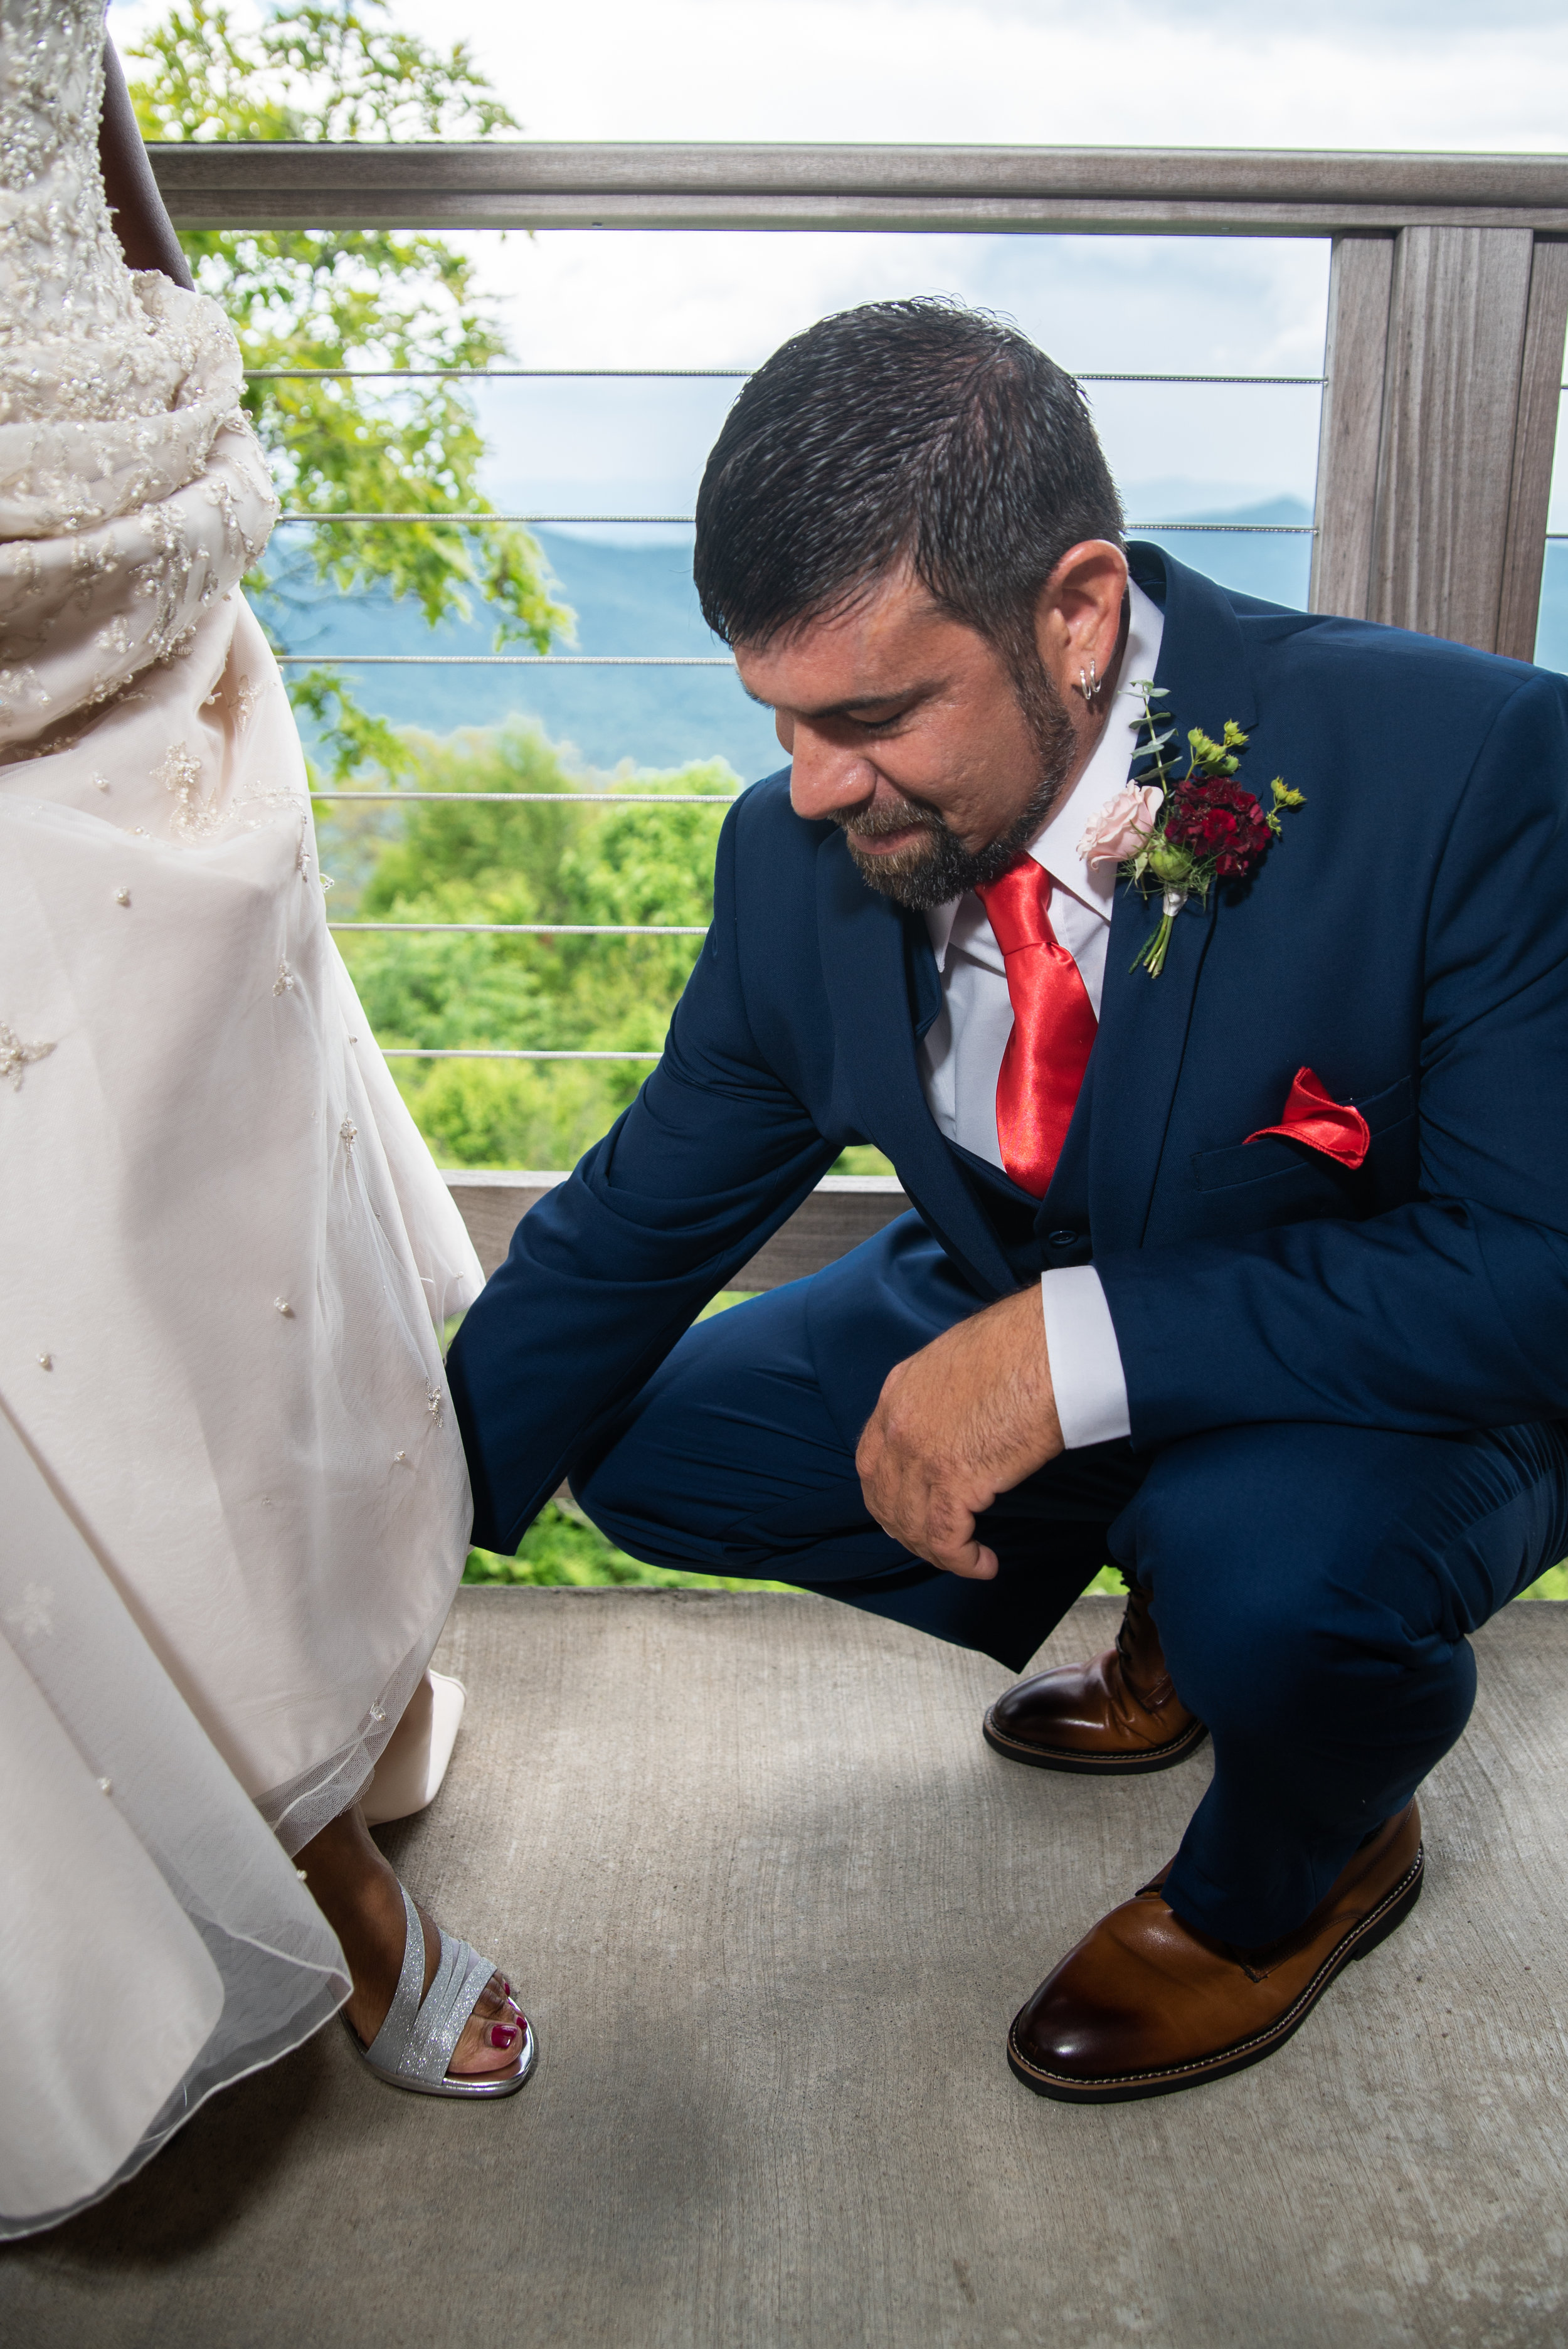 KeyaEric_Elopement-62 eric puts on her shoes adrian etheridge photography just bloom together styling.jpg